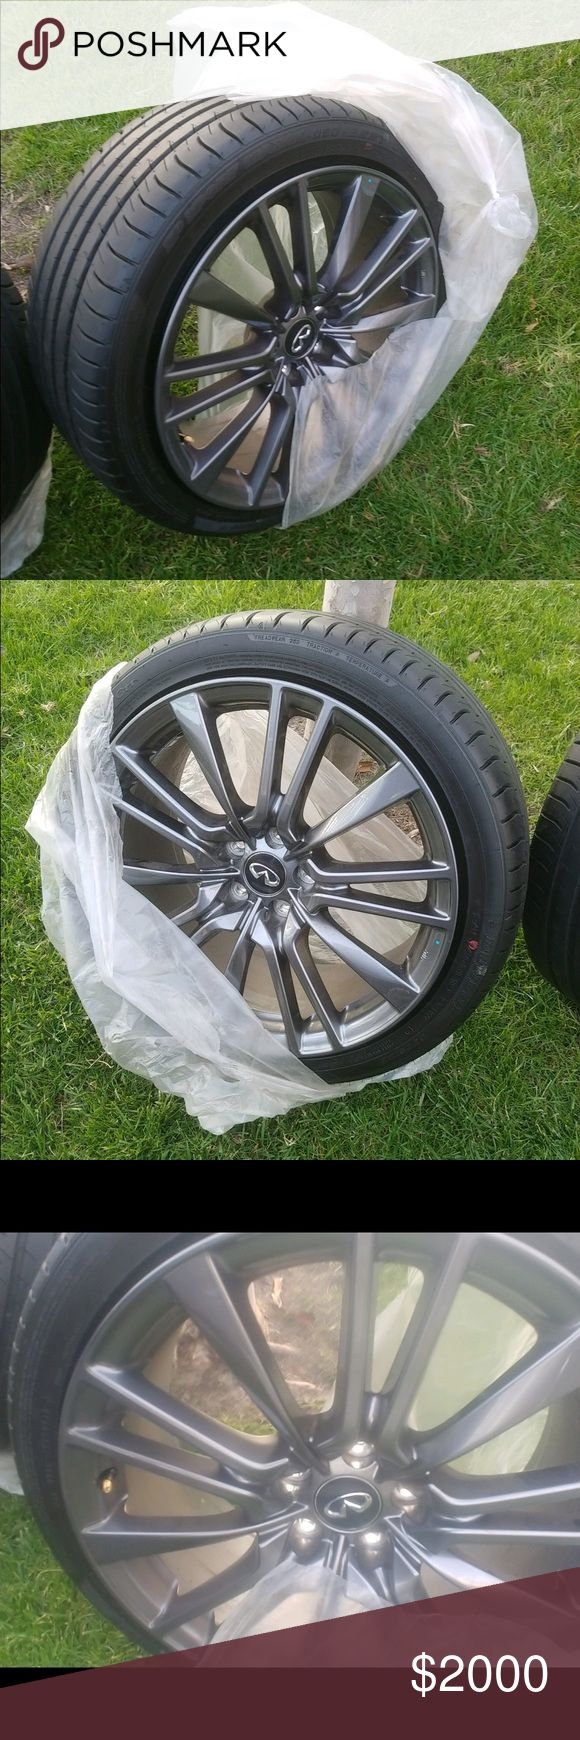 Rims and tires 19inch Infiniti Red sport new New tires and rims for sale. 19 inch Infiniti red sport run flat tires and rims for sale! Make an offer infiniti Other